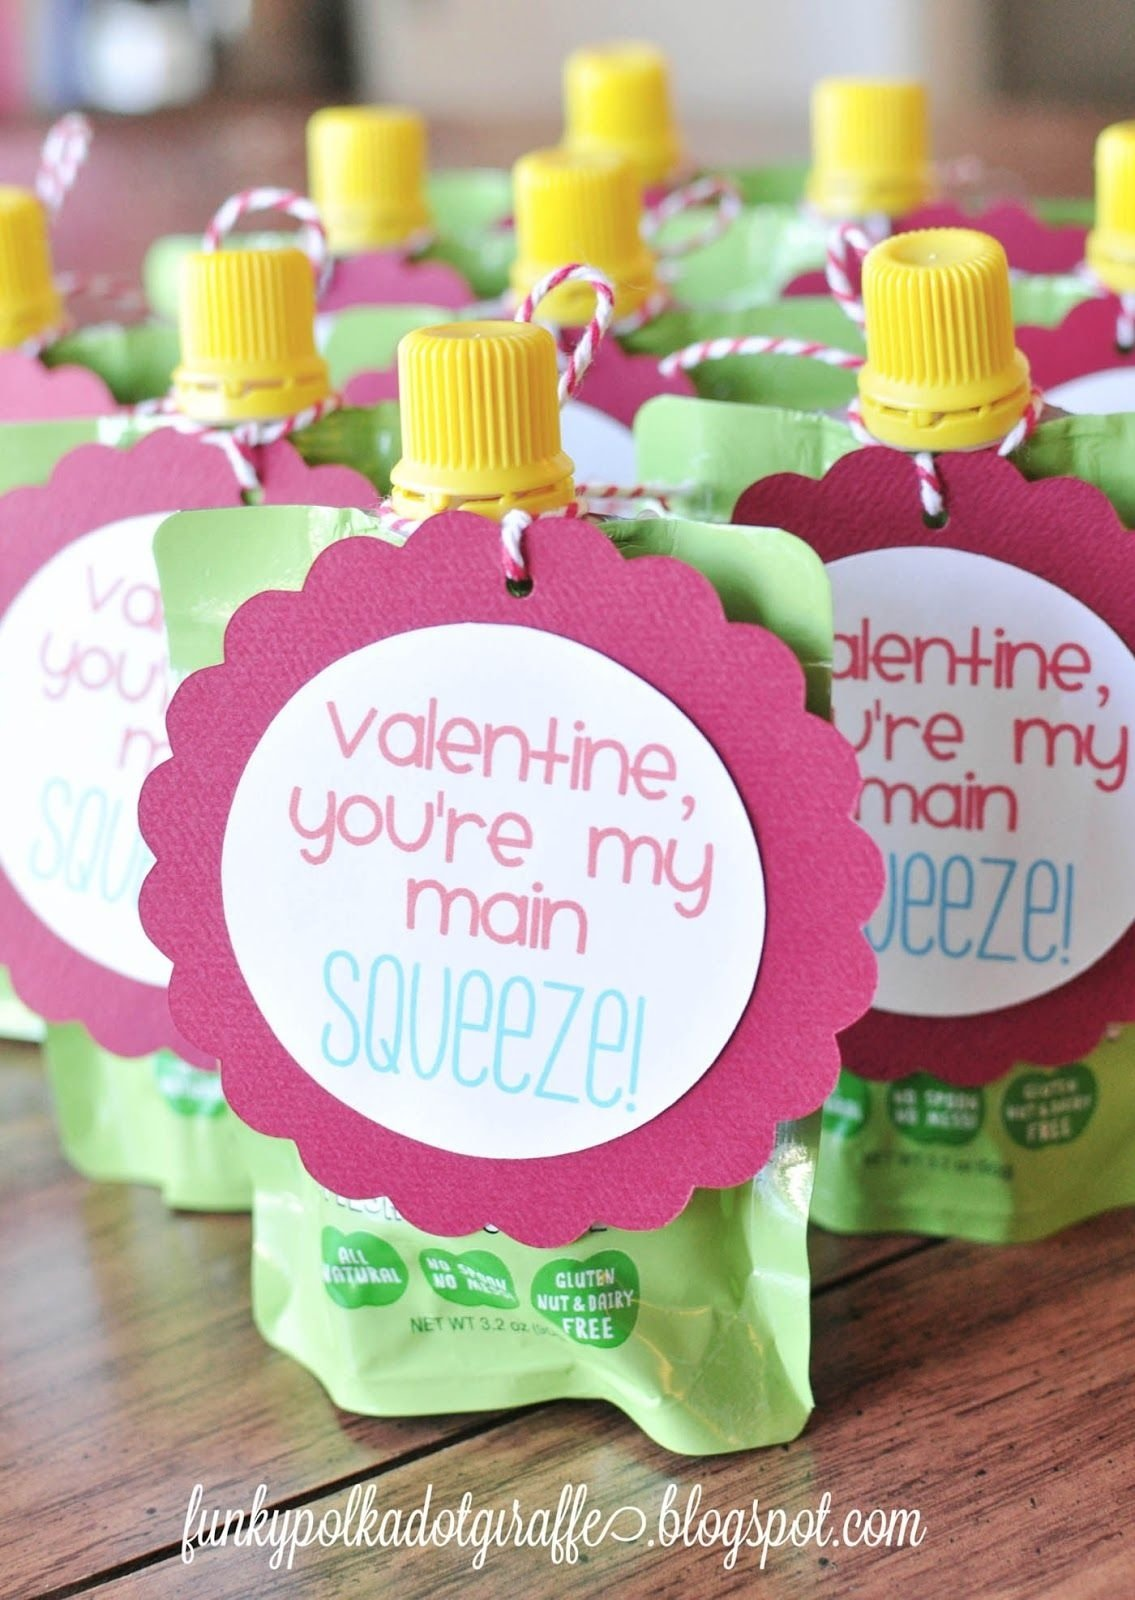 preschool valentines. this is a great idea! i wish we could boycott